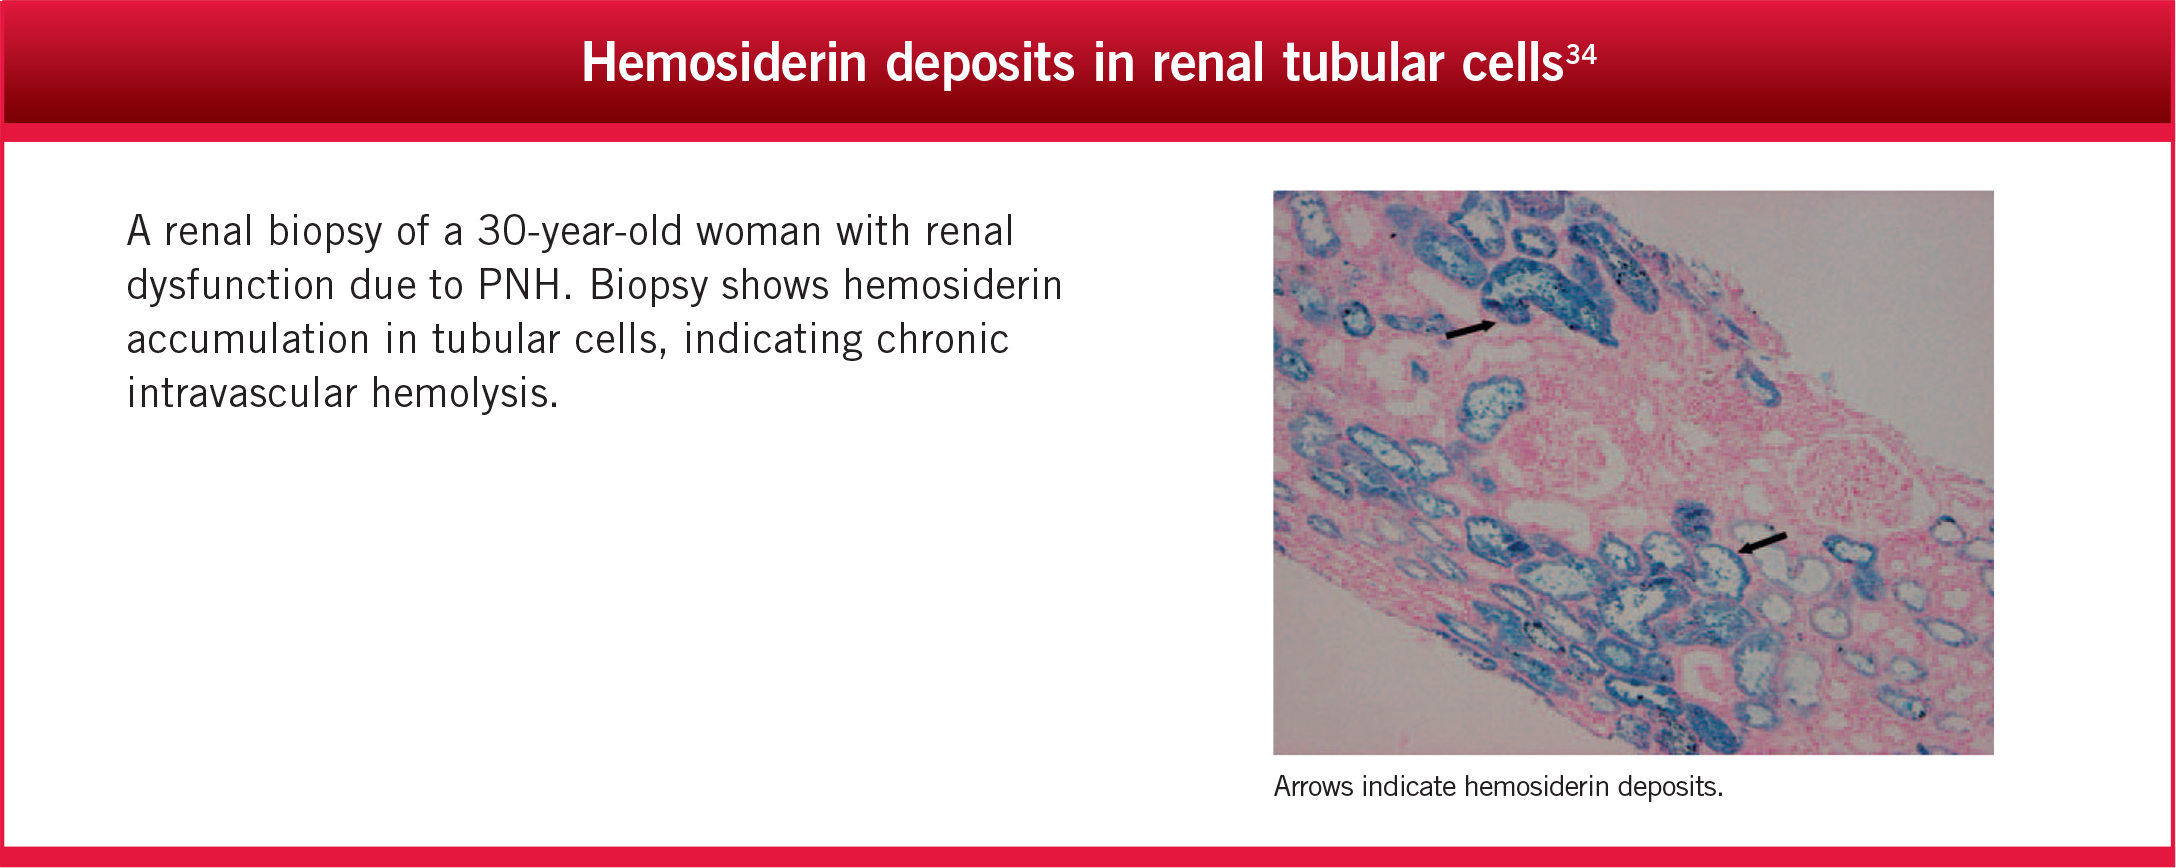 Hemosiderin deposits in renal tubular cells